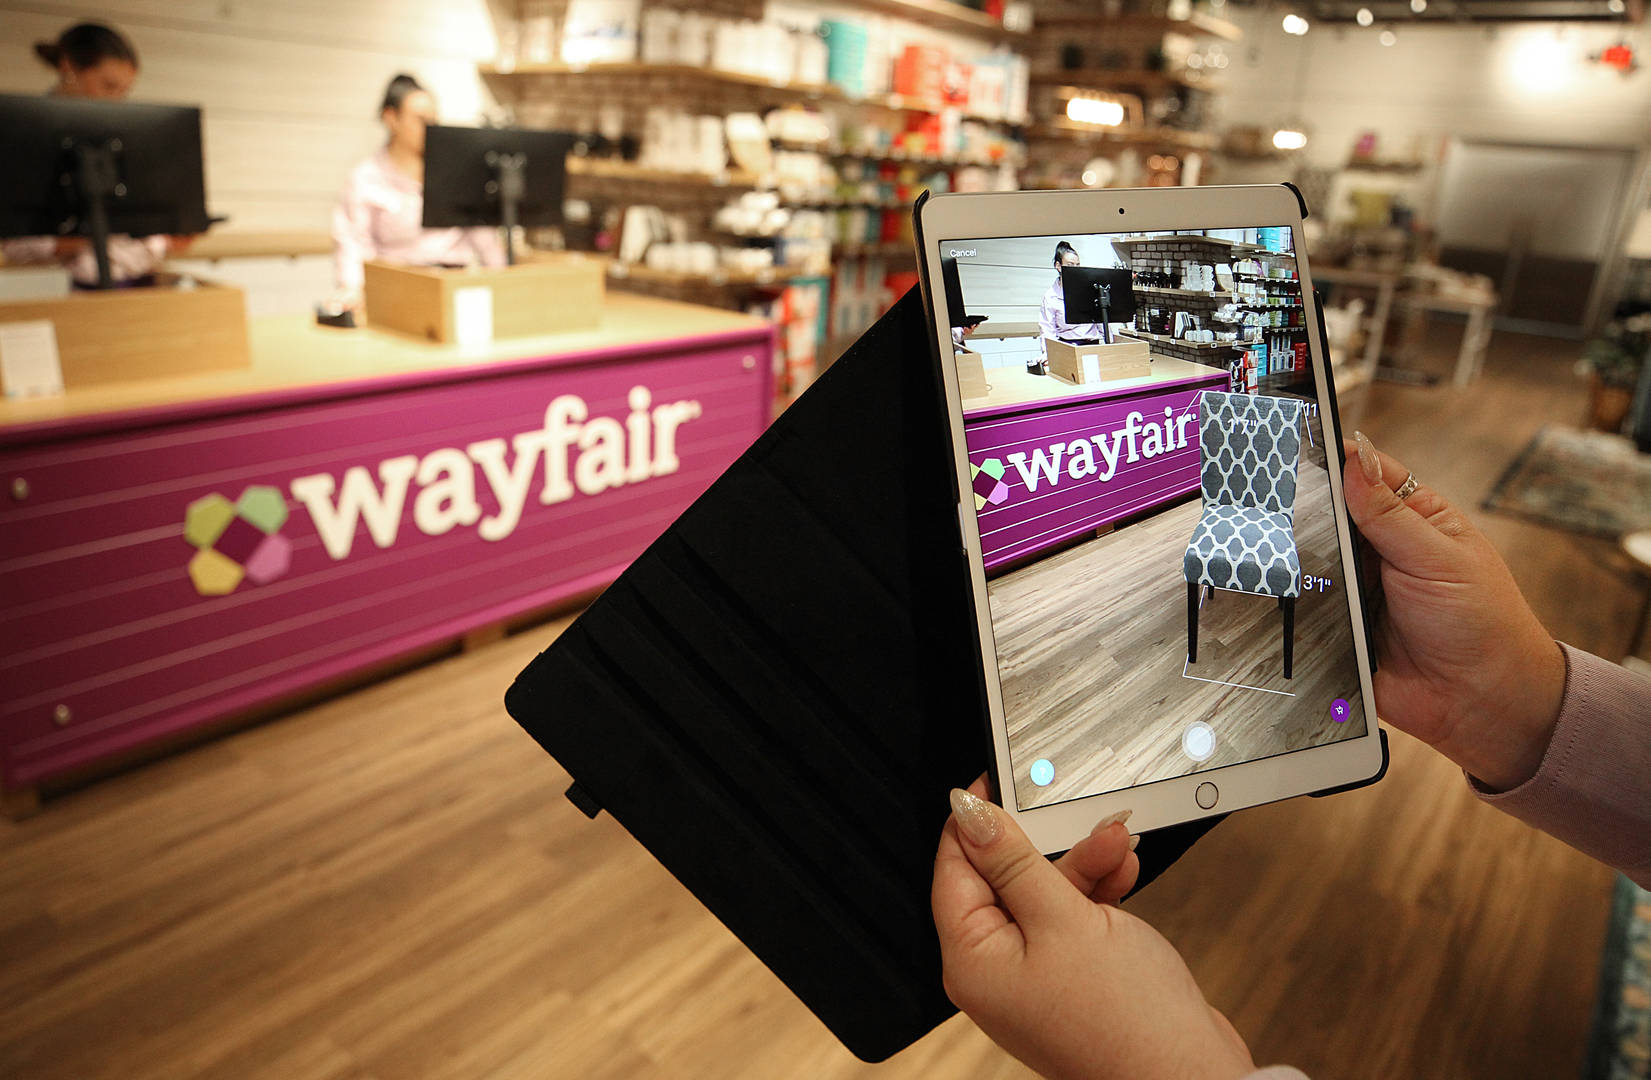 Wayfair shoots down conspiracy theory about child sex trafficking and expensive cabinets